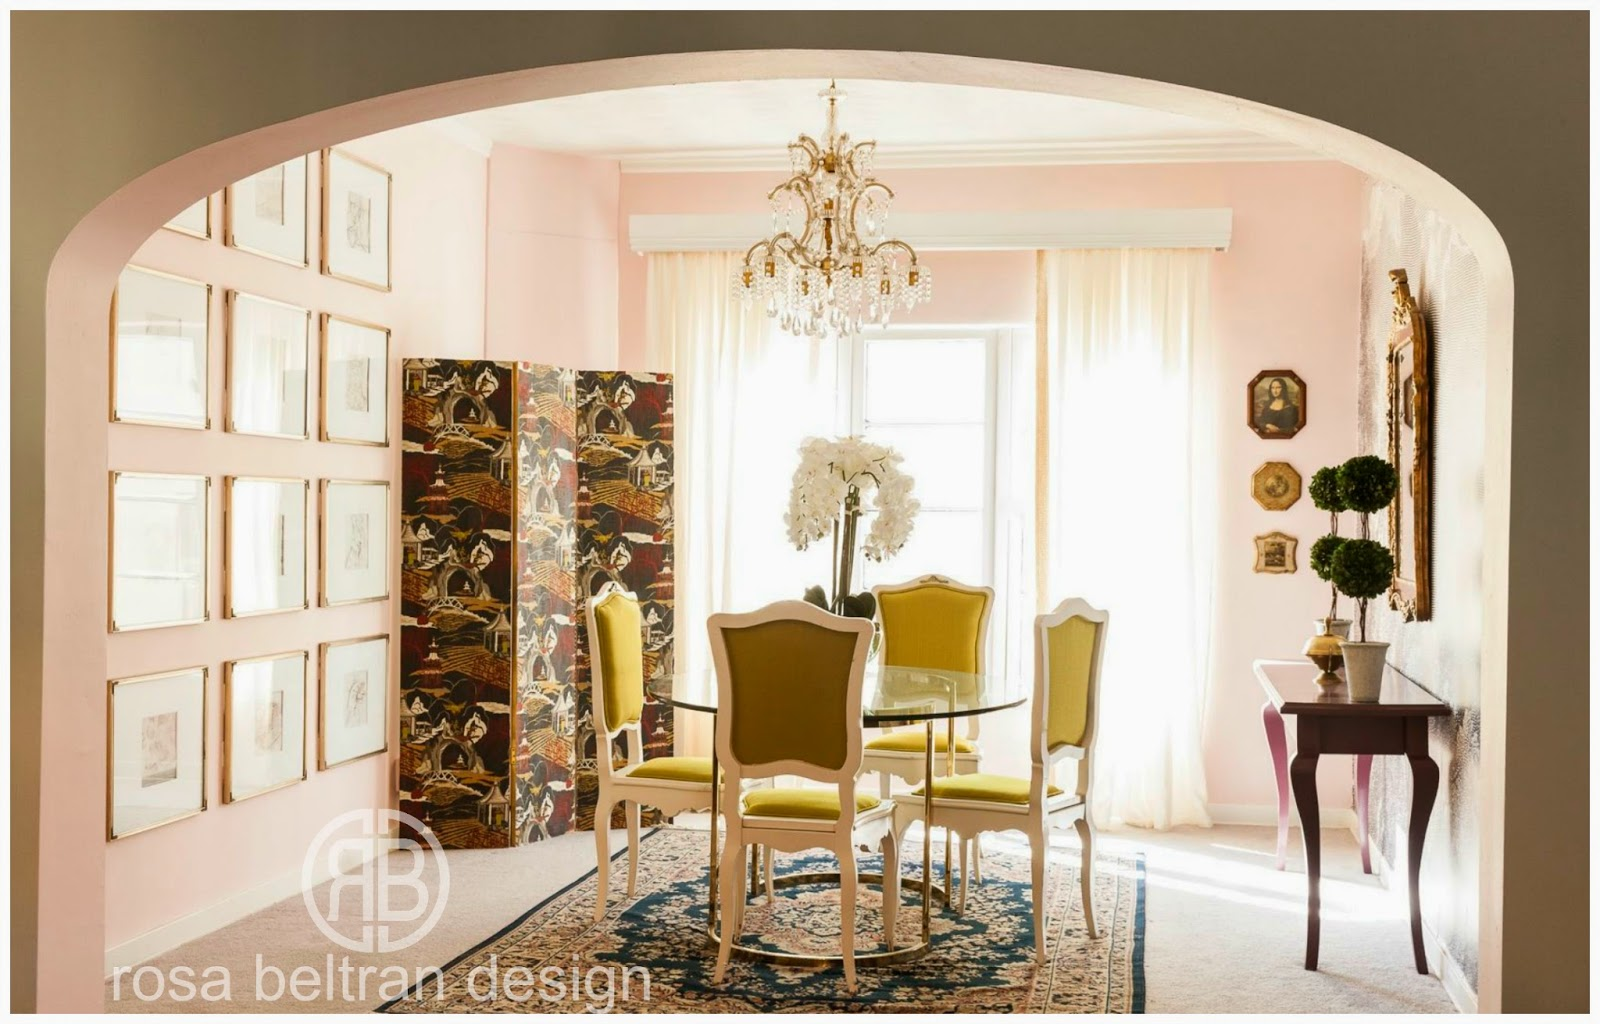 TRASH TO TREASURE: A SLEW OF FURNITURE MAKEOVERS FROM MY